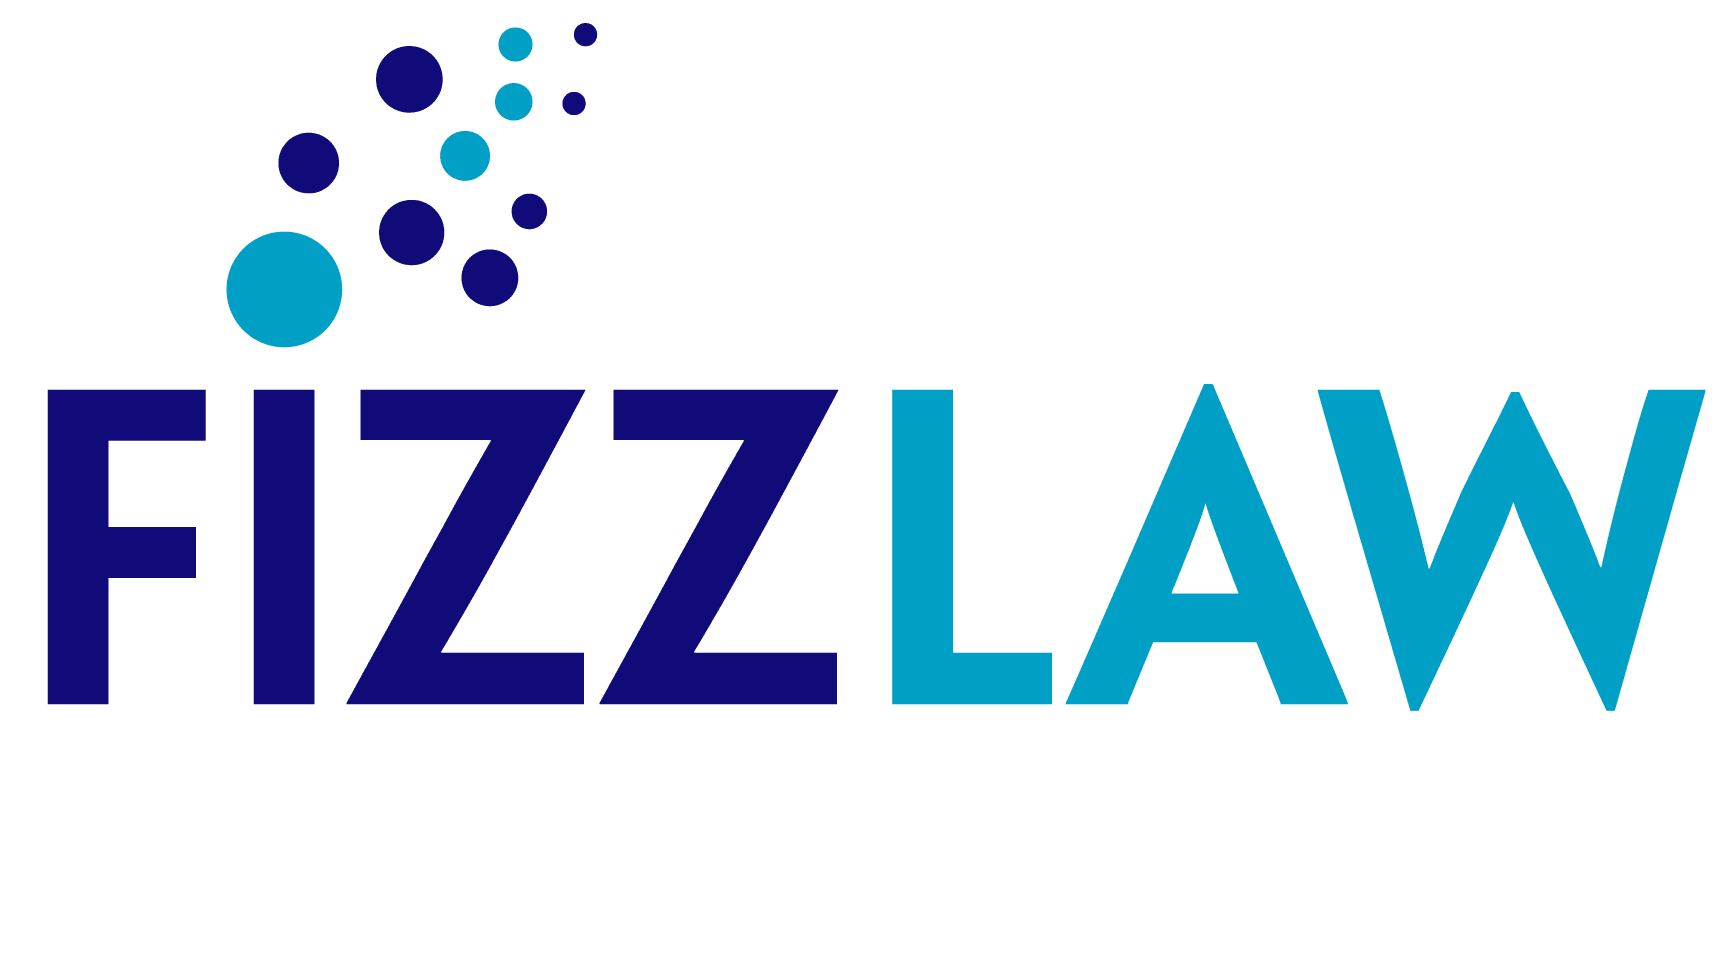 FizzLaw | Attorney Blogs, News and Articles | Lawyer Guest Blogging